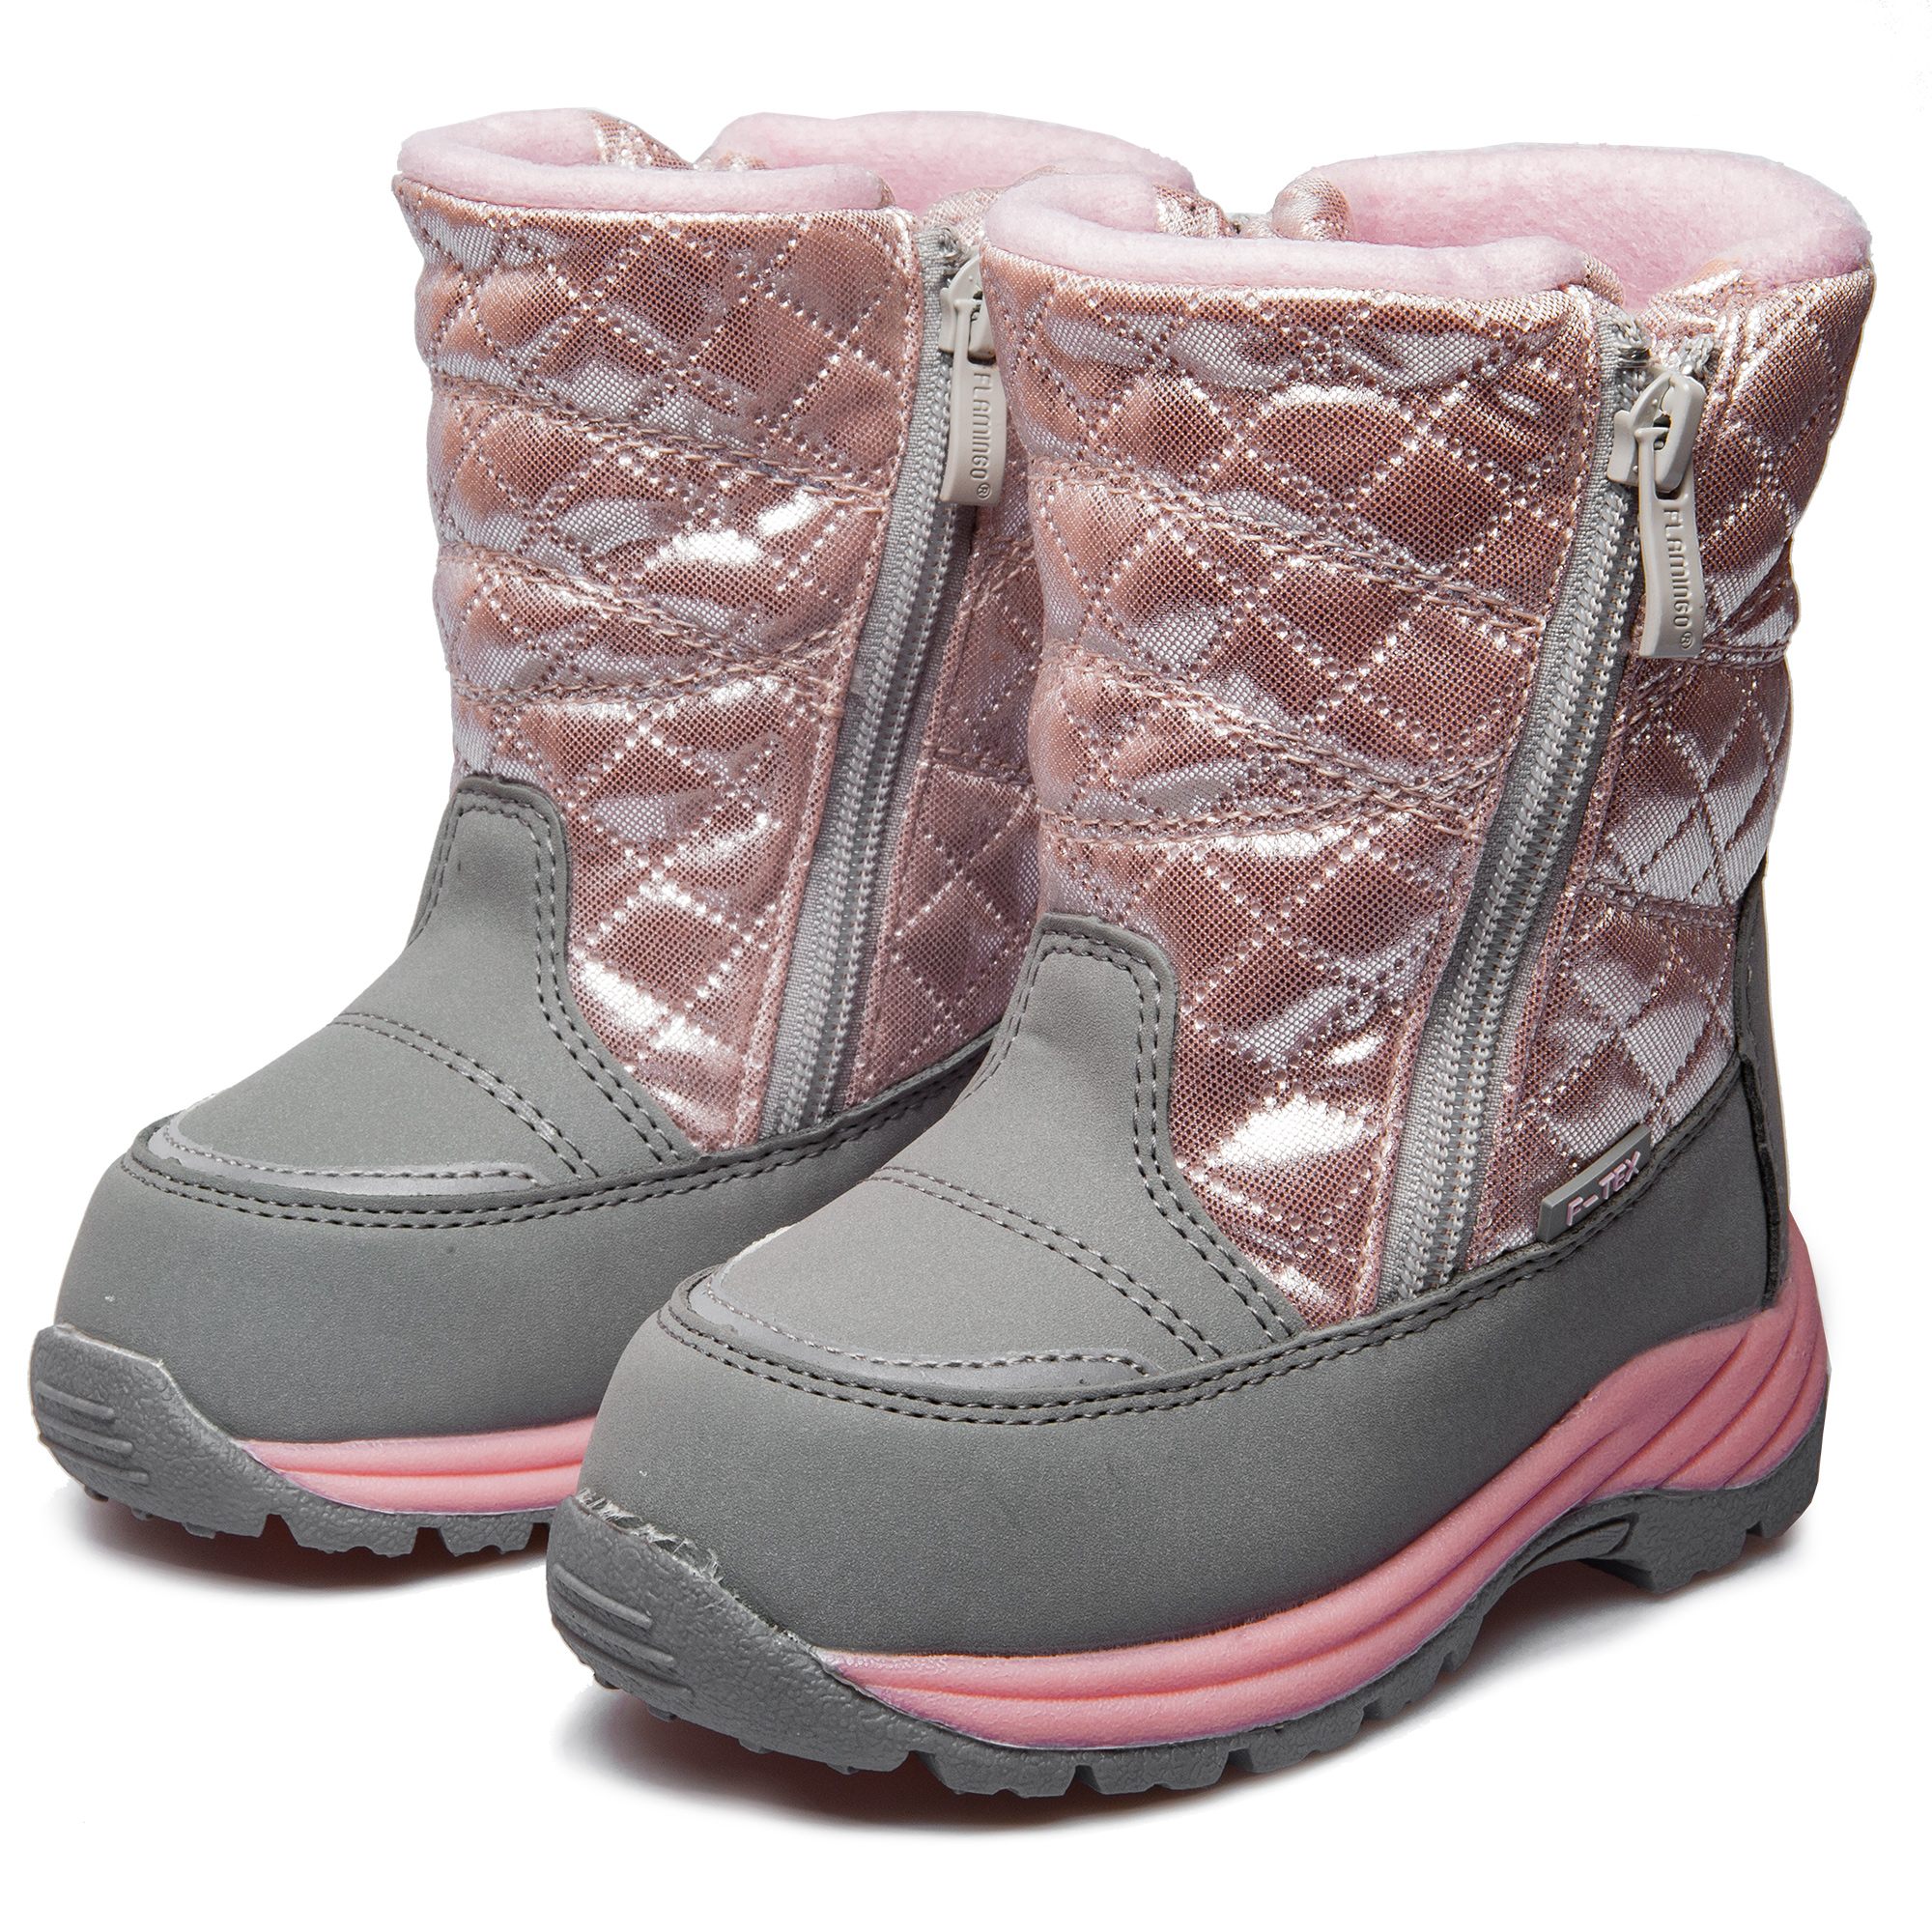 Flamingo shoes 92M-QK-1620 shoes for children 23-28 # flamingo winter anti slip waterproof wool warm high quality kids shoes orthotic arch size 23 28 snow boots for girl 82m qk 0946